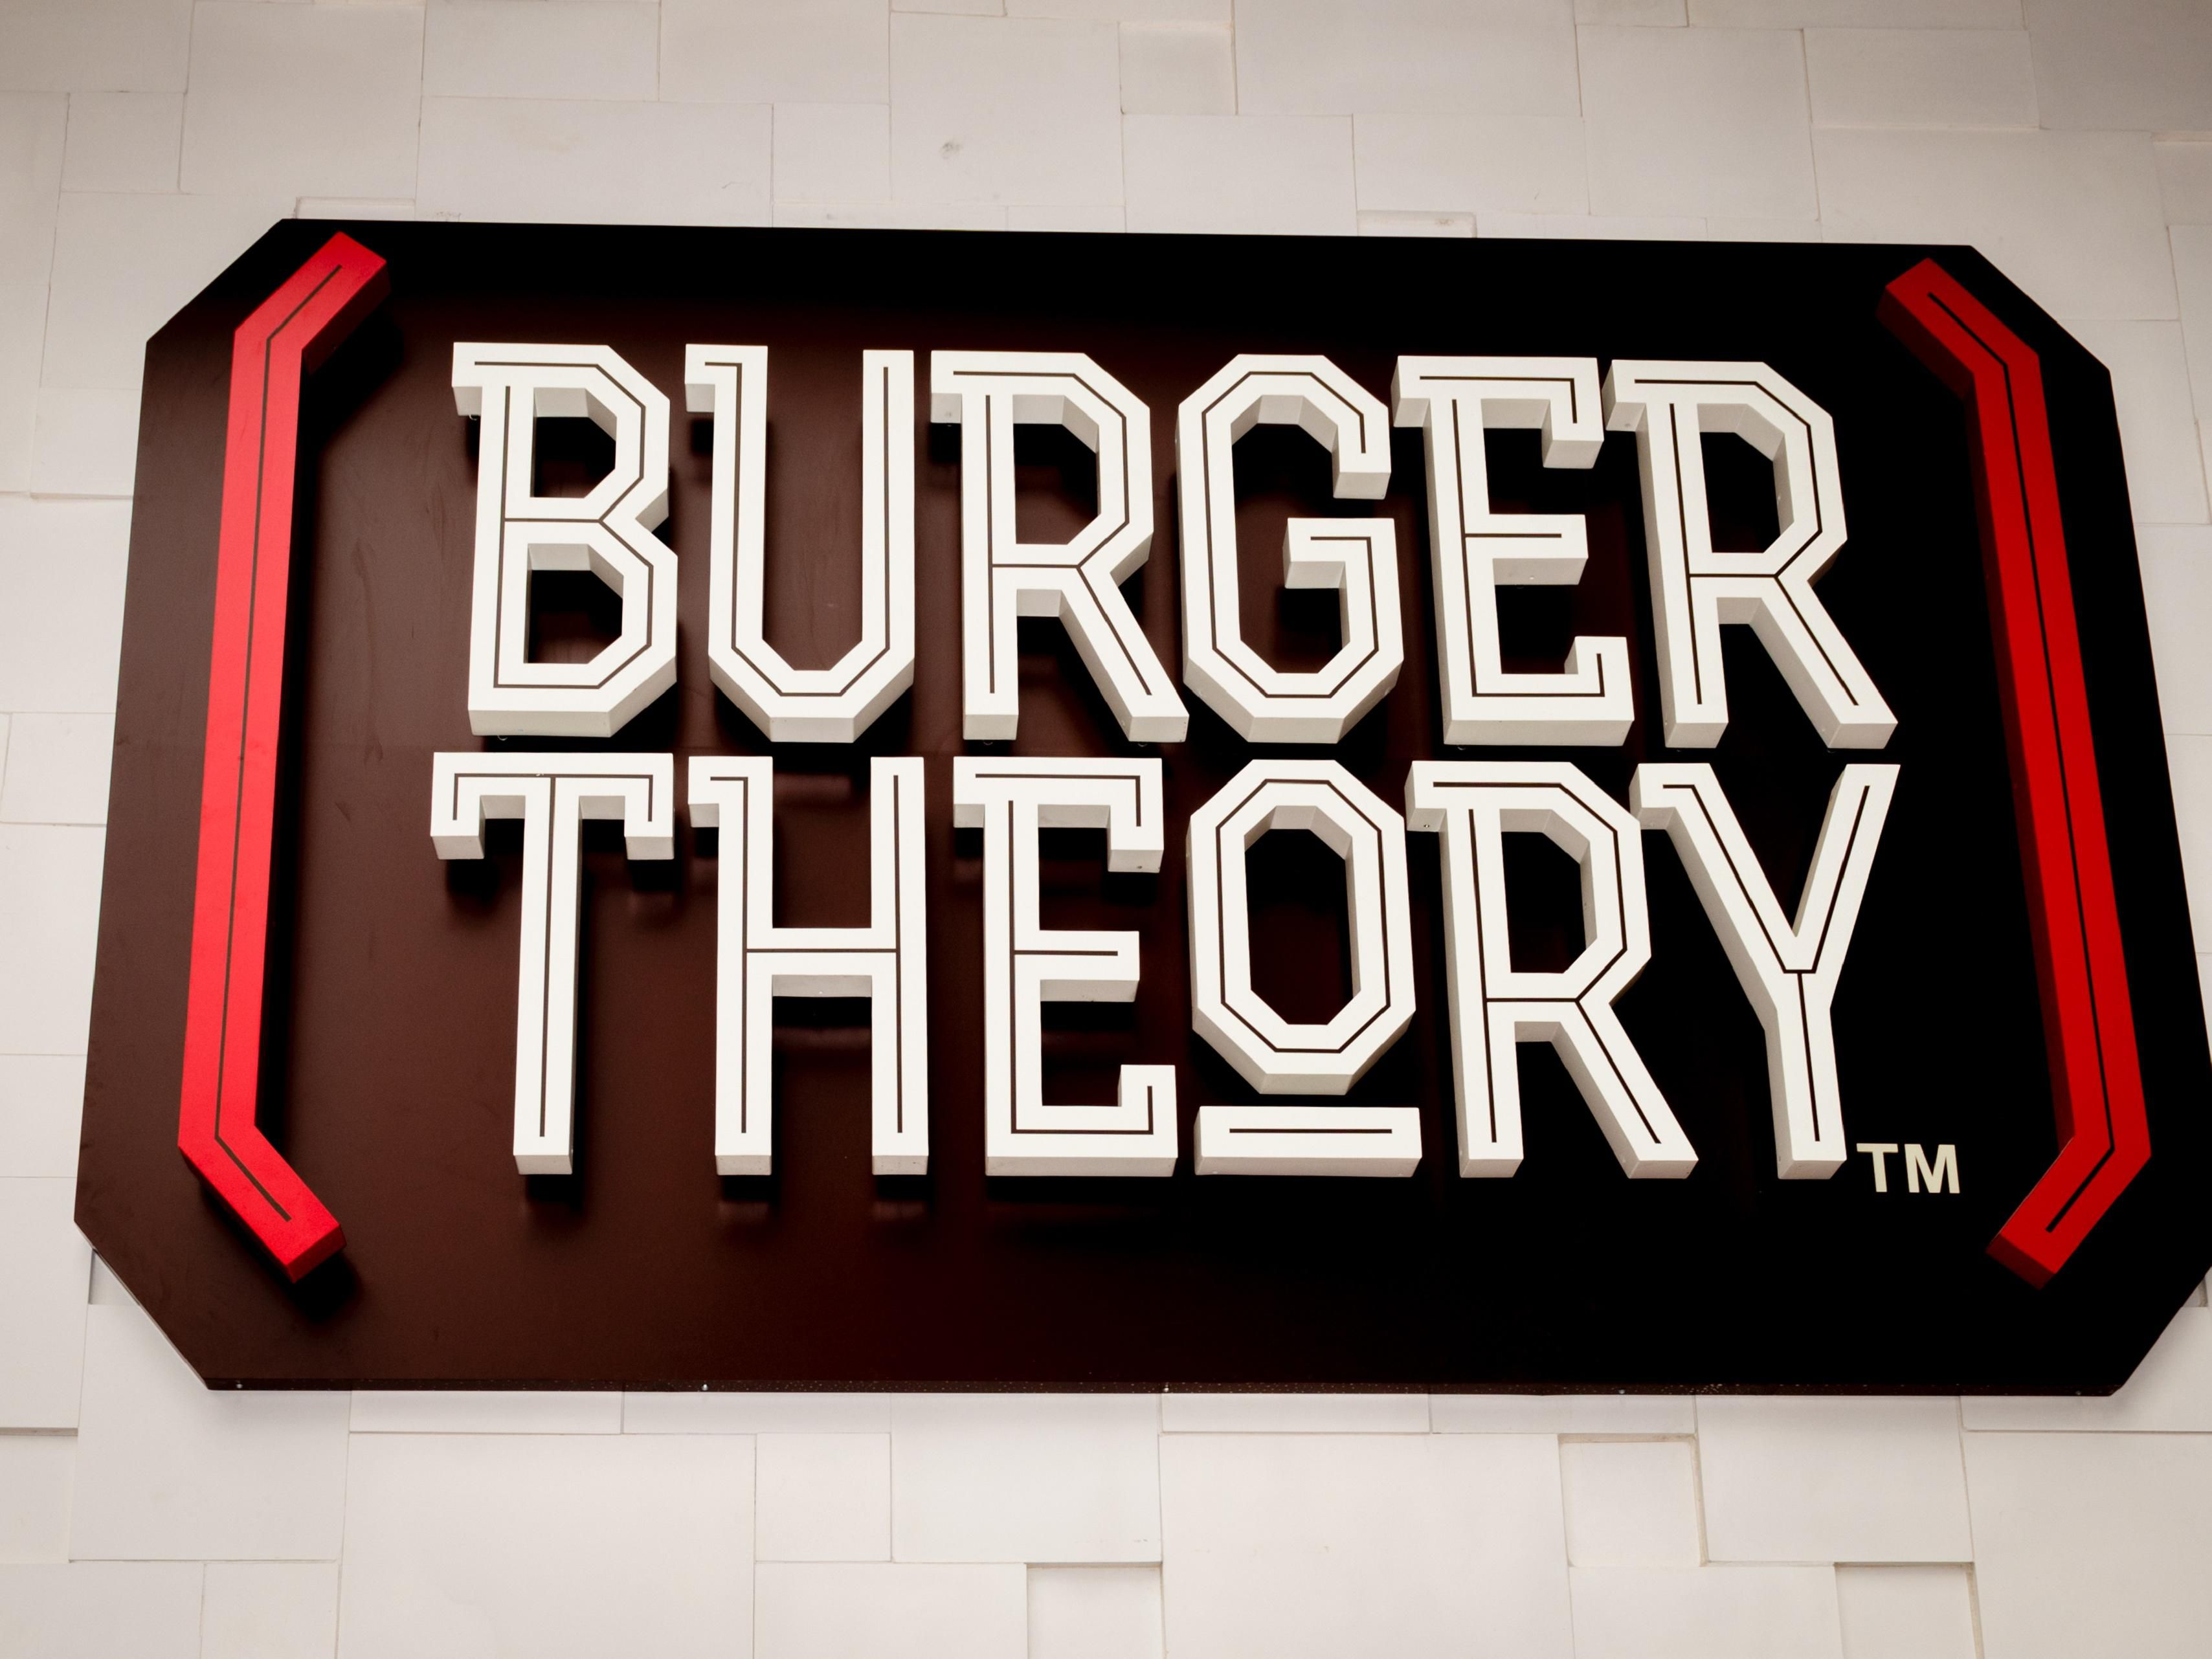 Come enjoy a signature burger or hot wings from Burger Theory